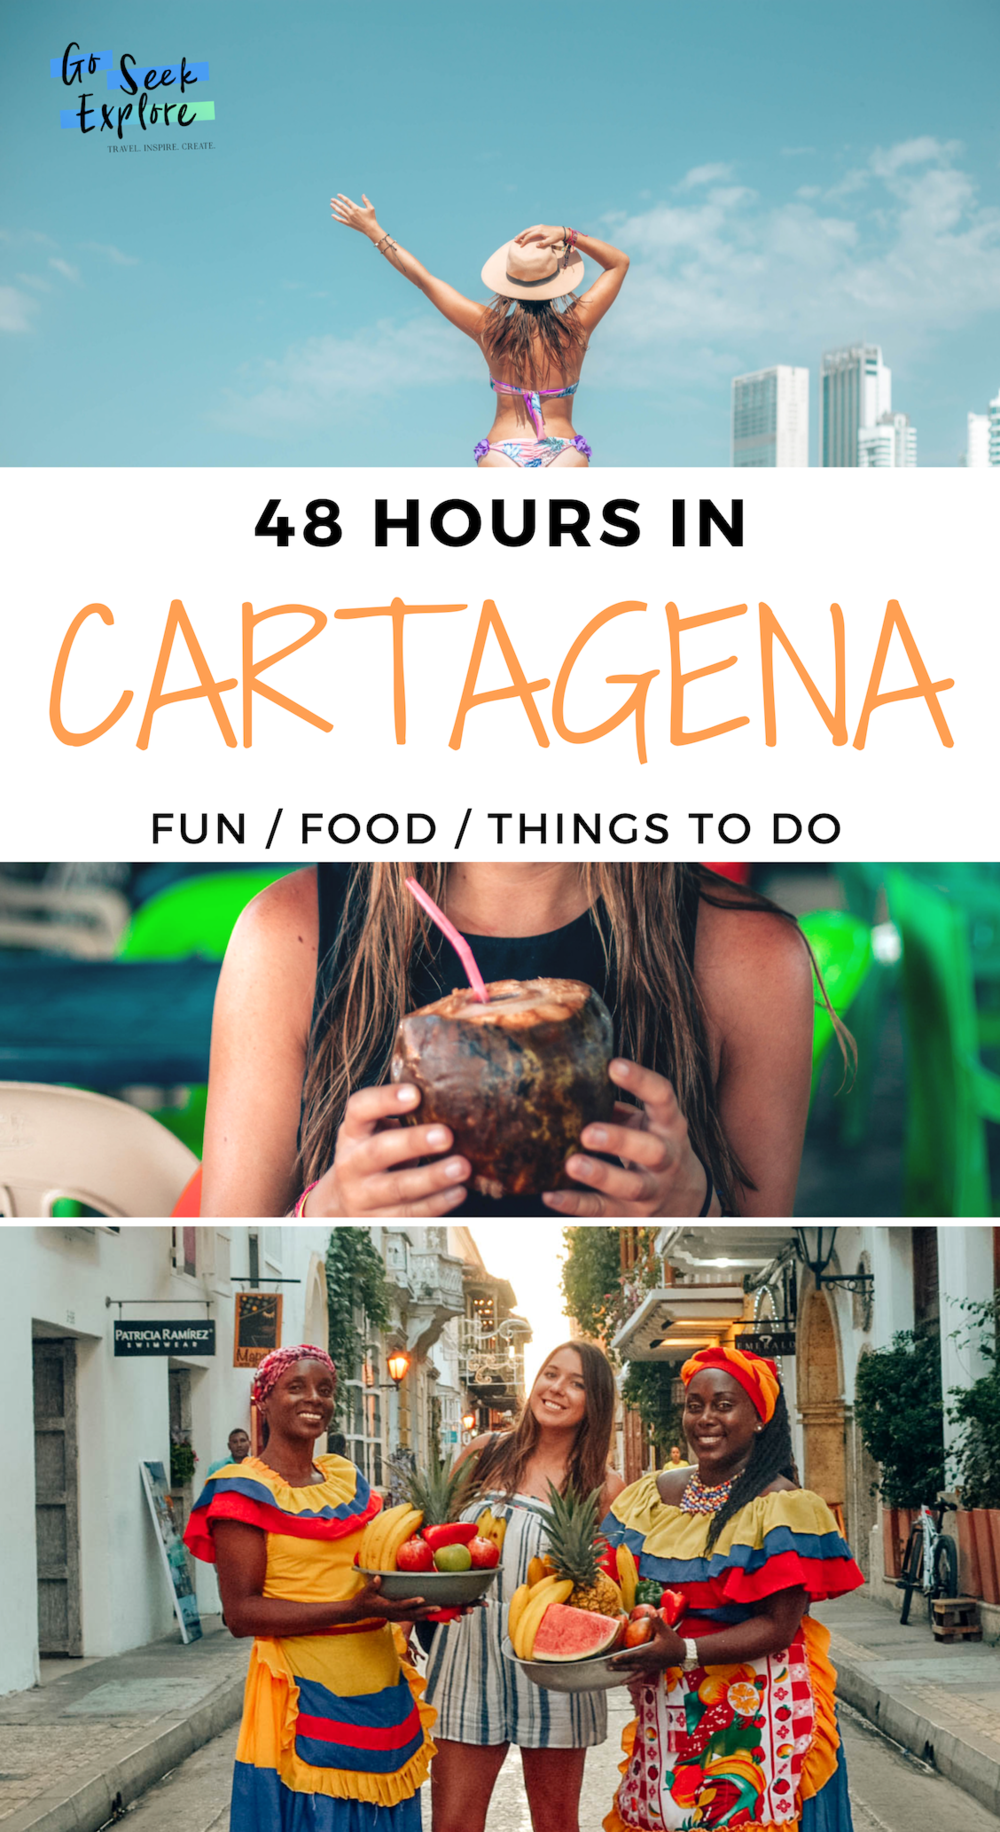 What to do in Cartagena! Things I recommend on your trip to Cartagena, Colombia in South America - where to stay, what to eat, what beaches to visit, and more! / goseekexplore.com